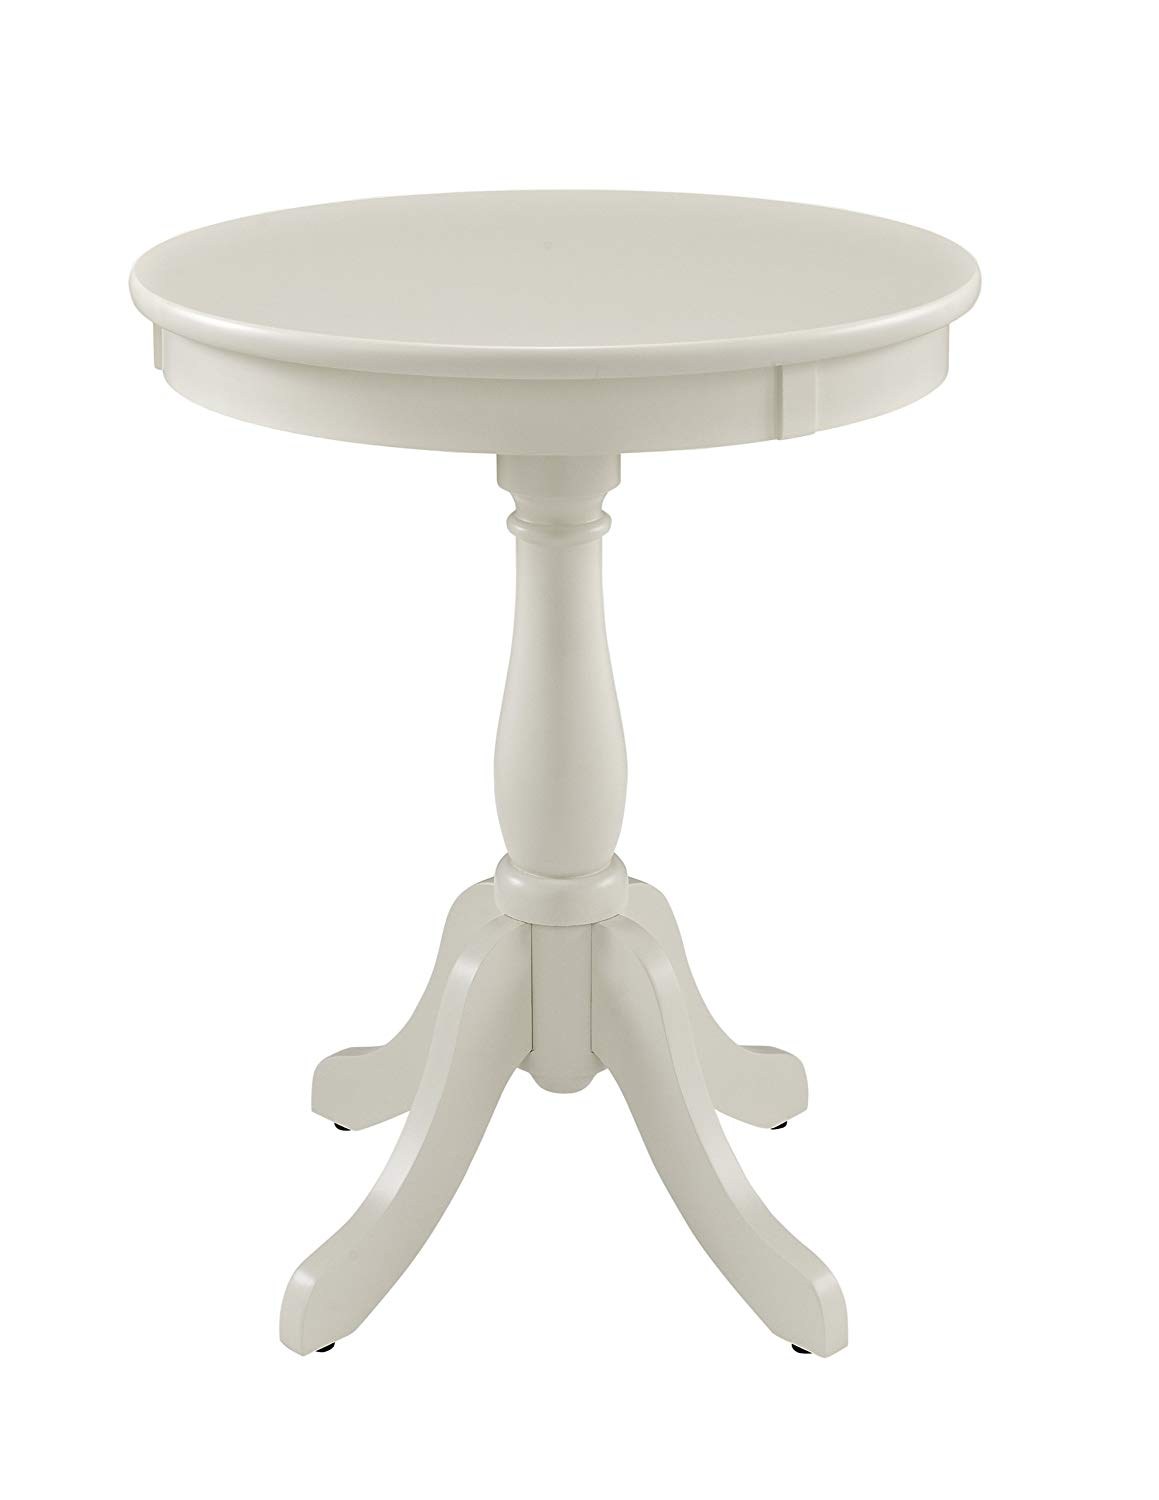 powell furniture round accent white end table kitchen dining magnolia gallery ceramic outdoor tables vintage modern decor universal spencer dresser ethan allen american